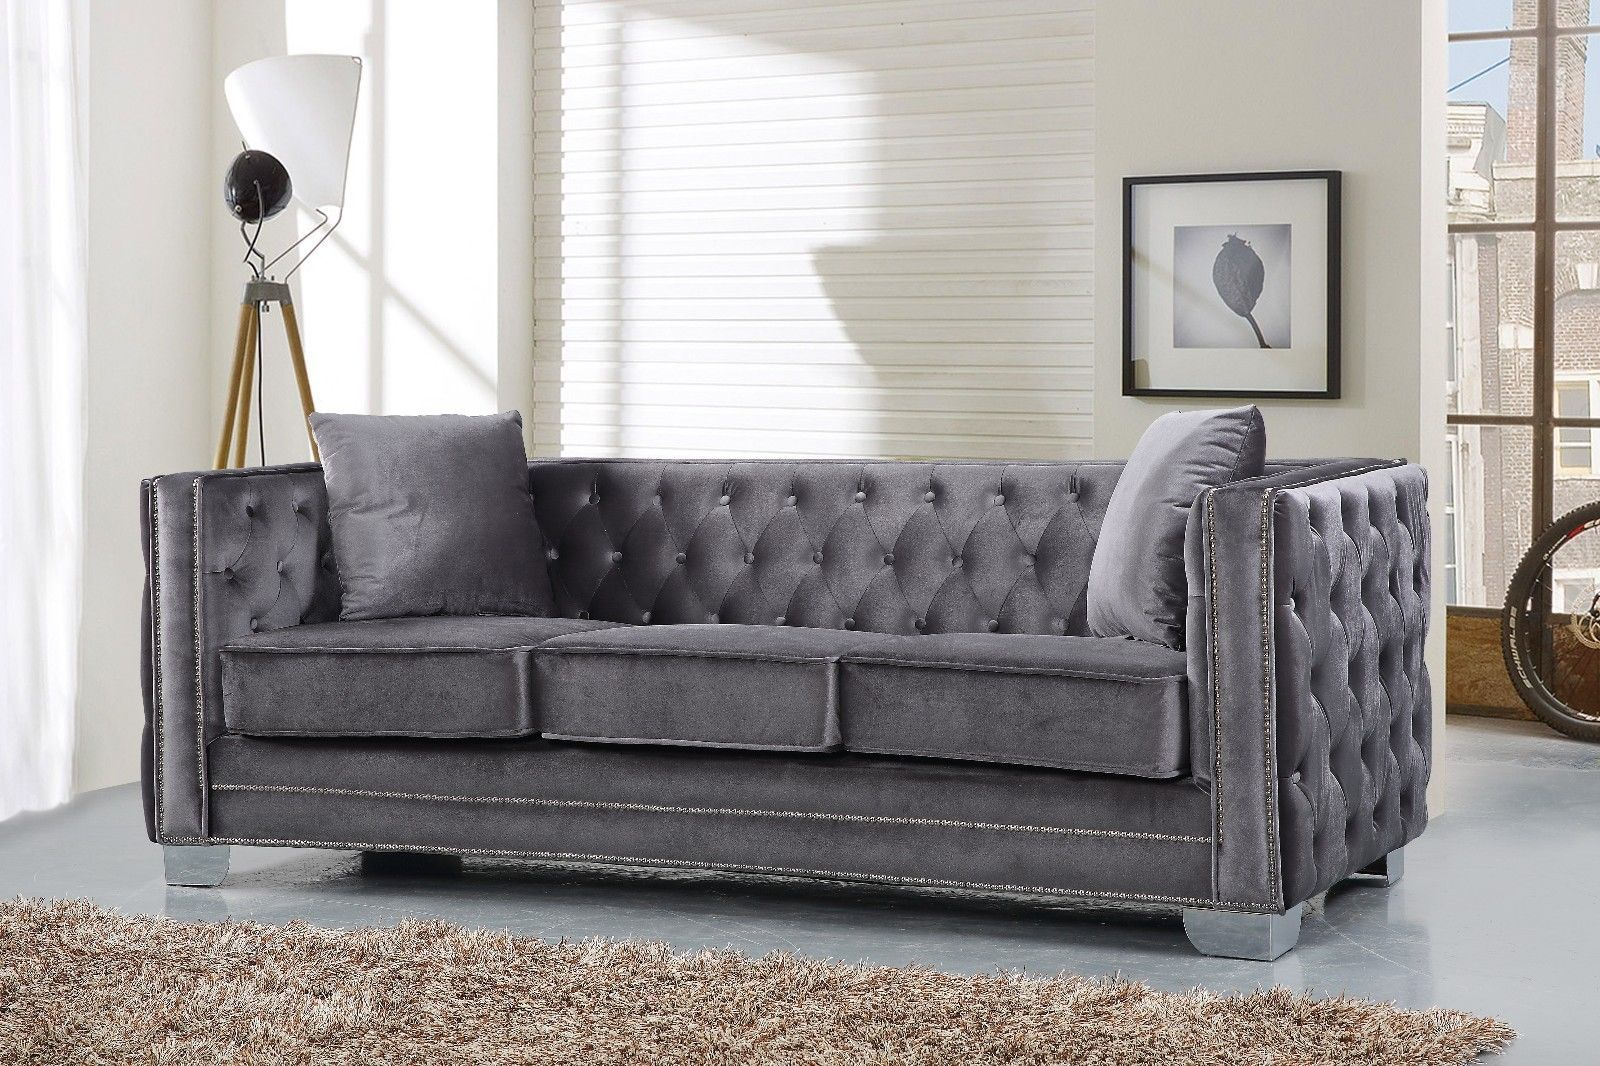 Meridian 648 Velvet Living Room Sofa Set 3pc. Tufted Grey Contemporary Style